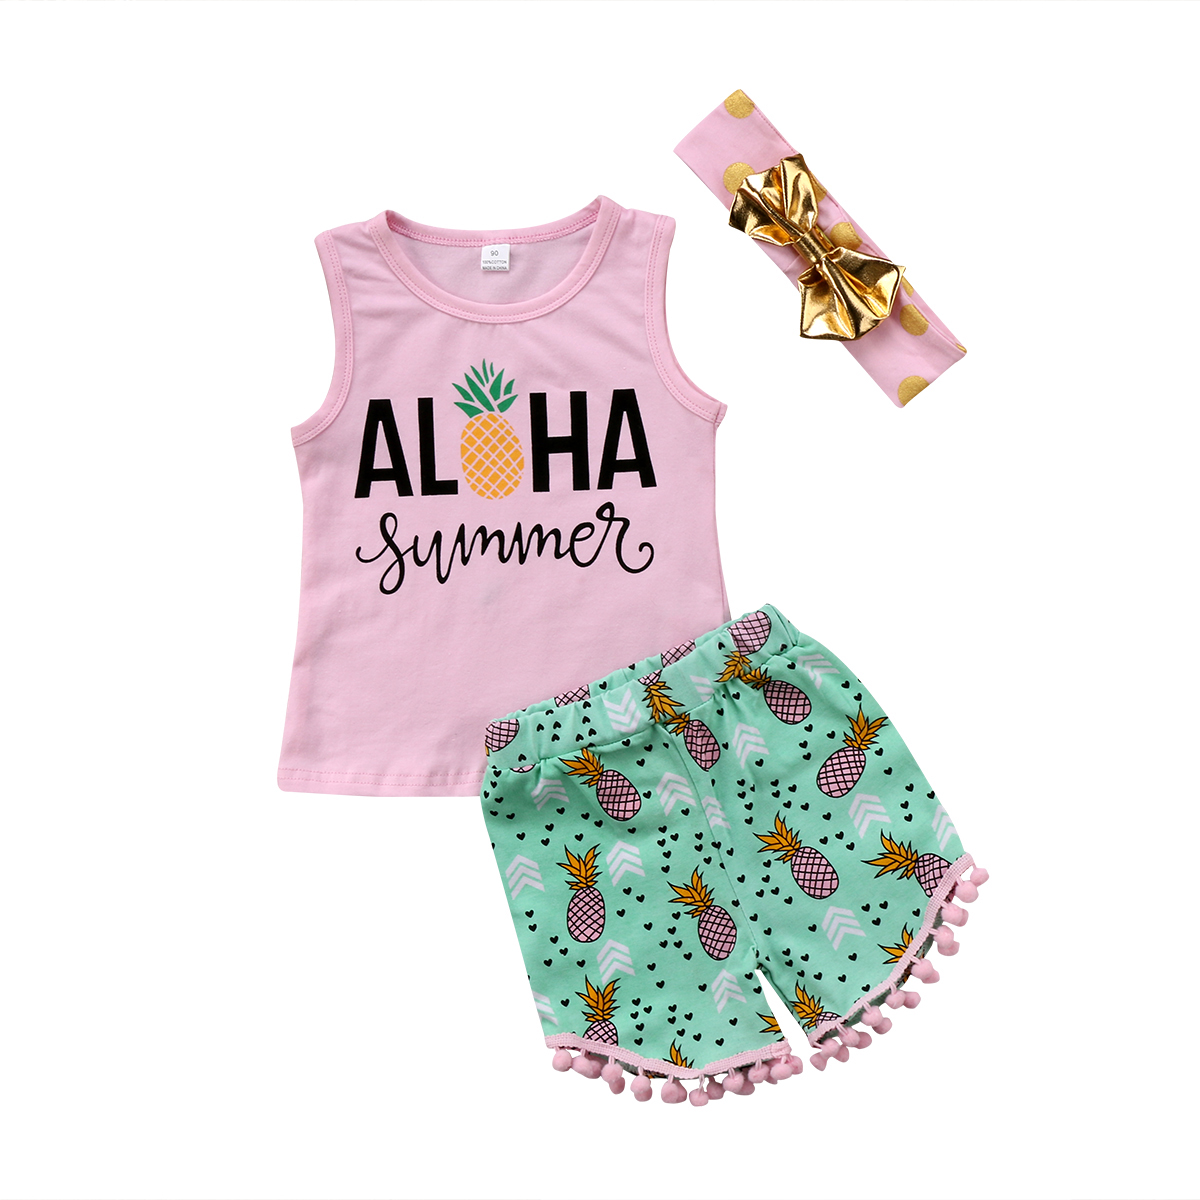 d3c21c1a3eb 2018 Kids Baby Girl Toddler Summer Top Sleeveless T-shirt Pineapple Vest+  Pants Shorts Clothes